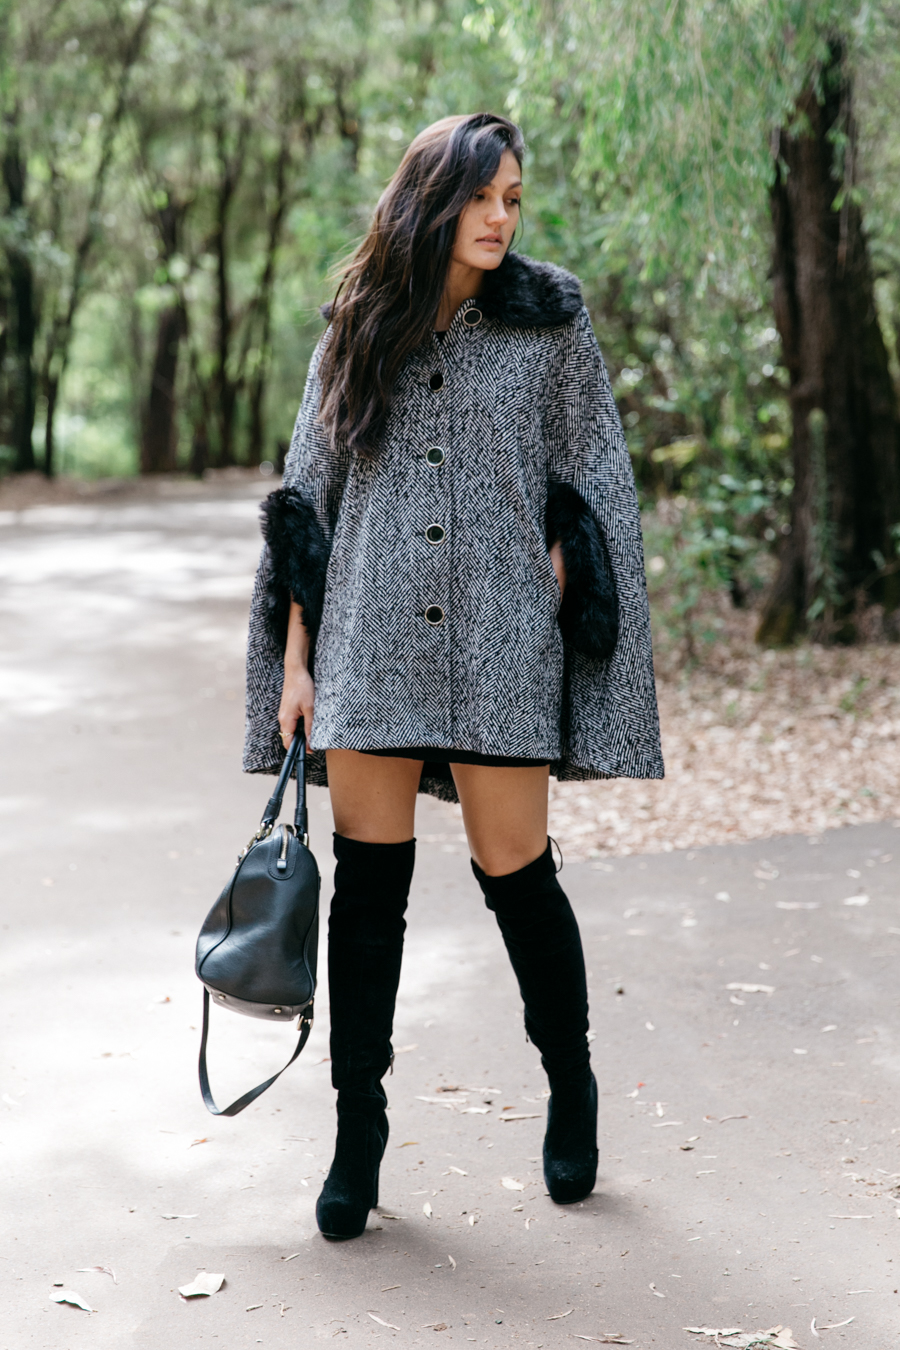 Chic outfit with knee high boots.